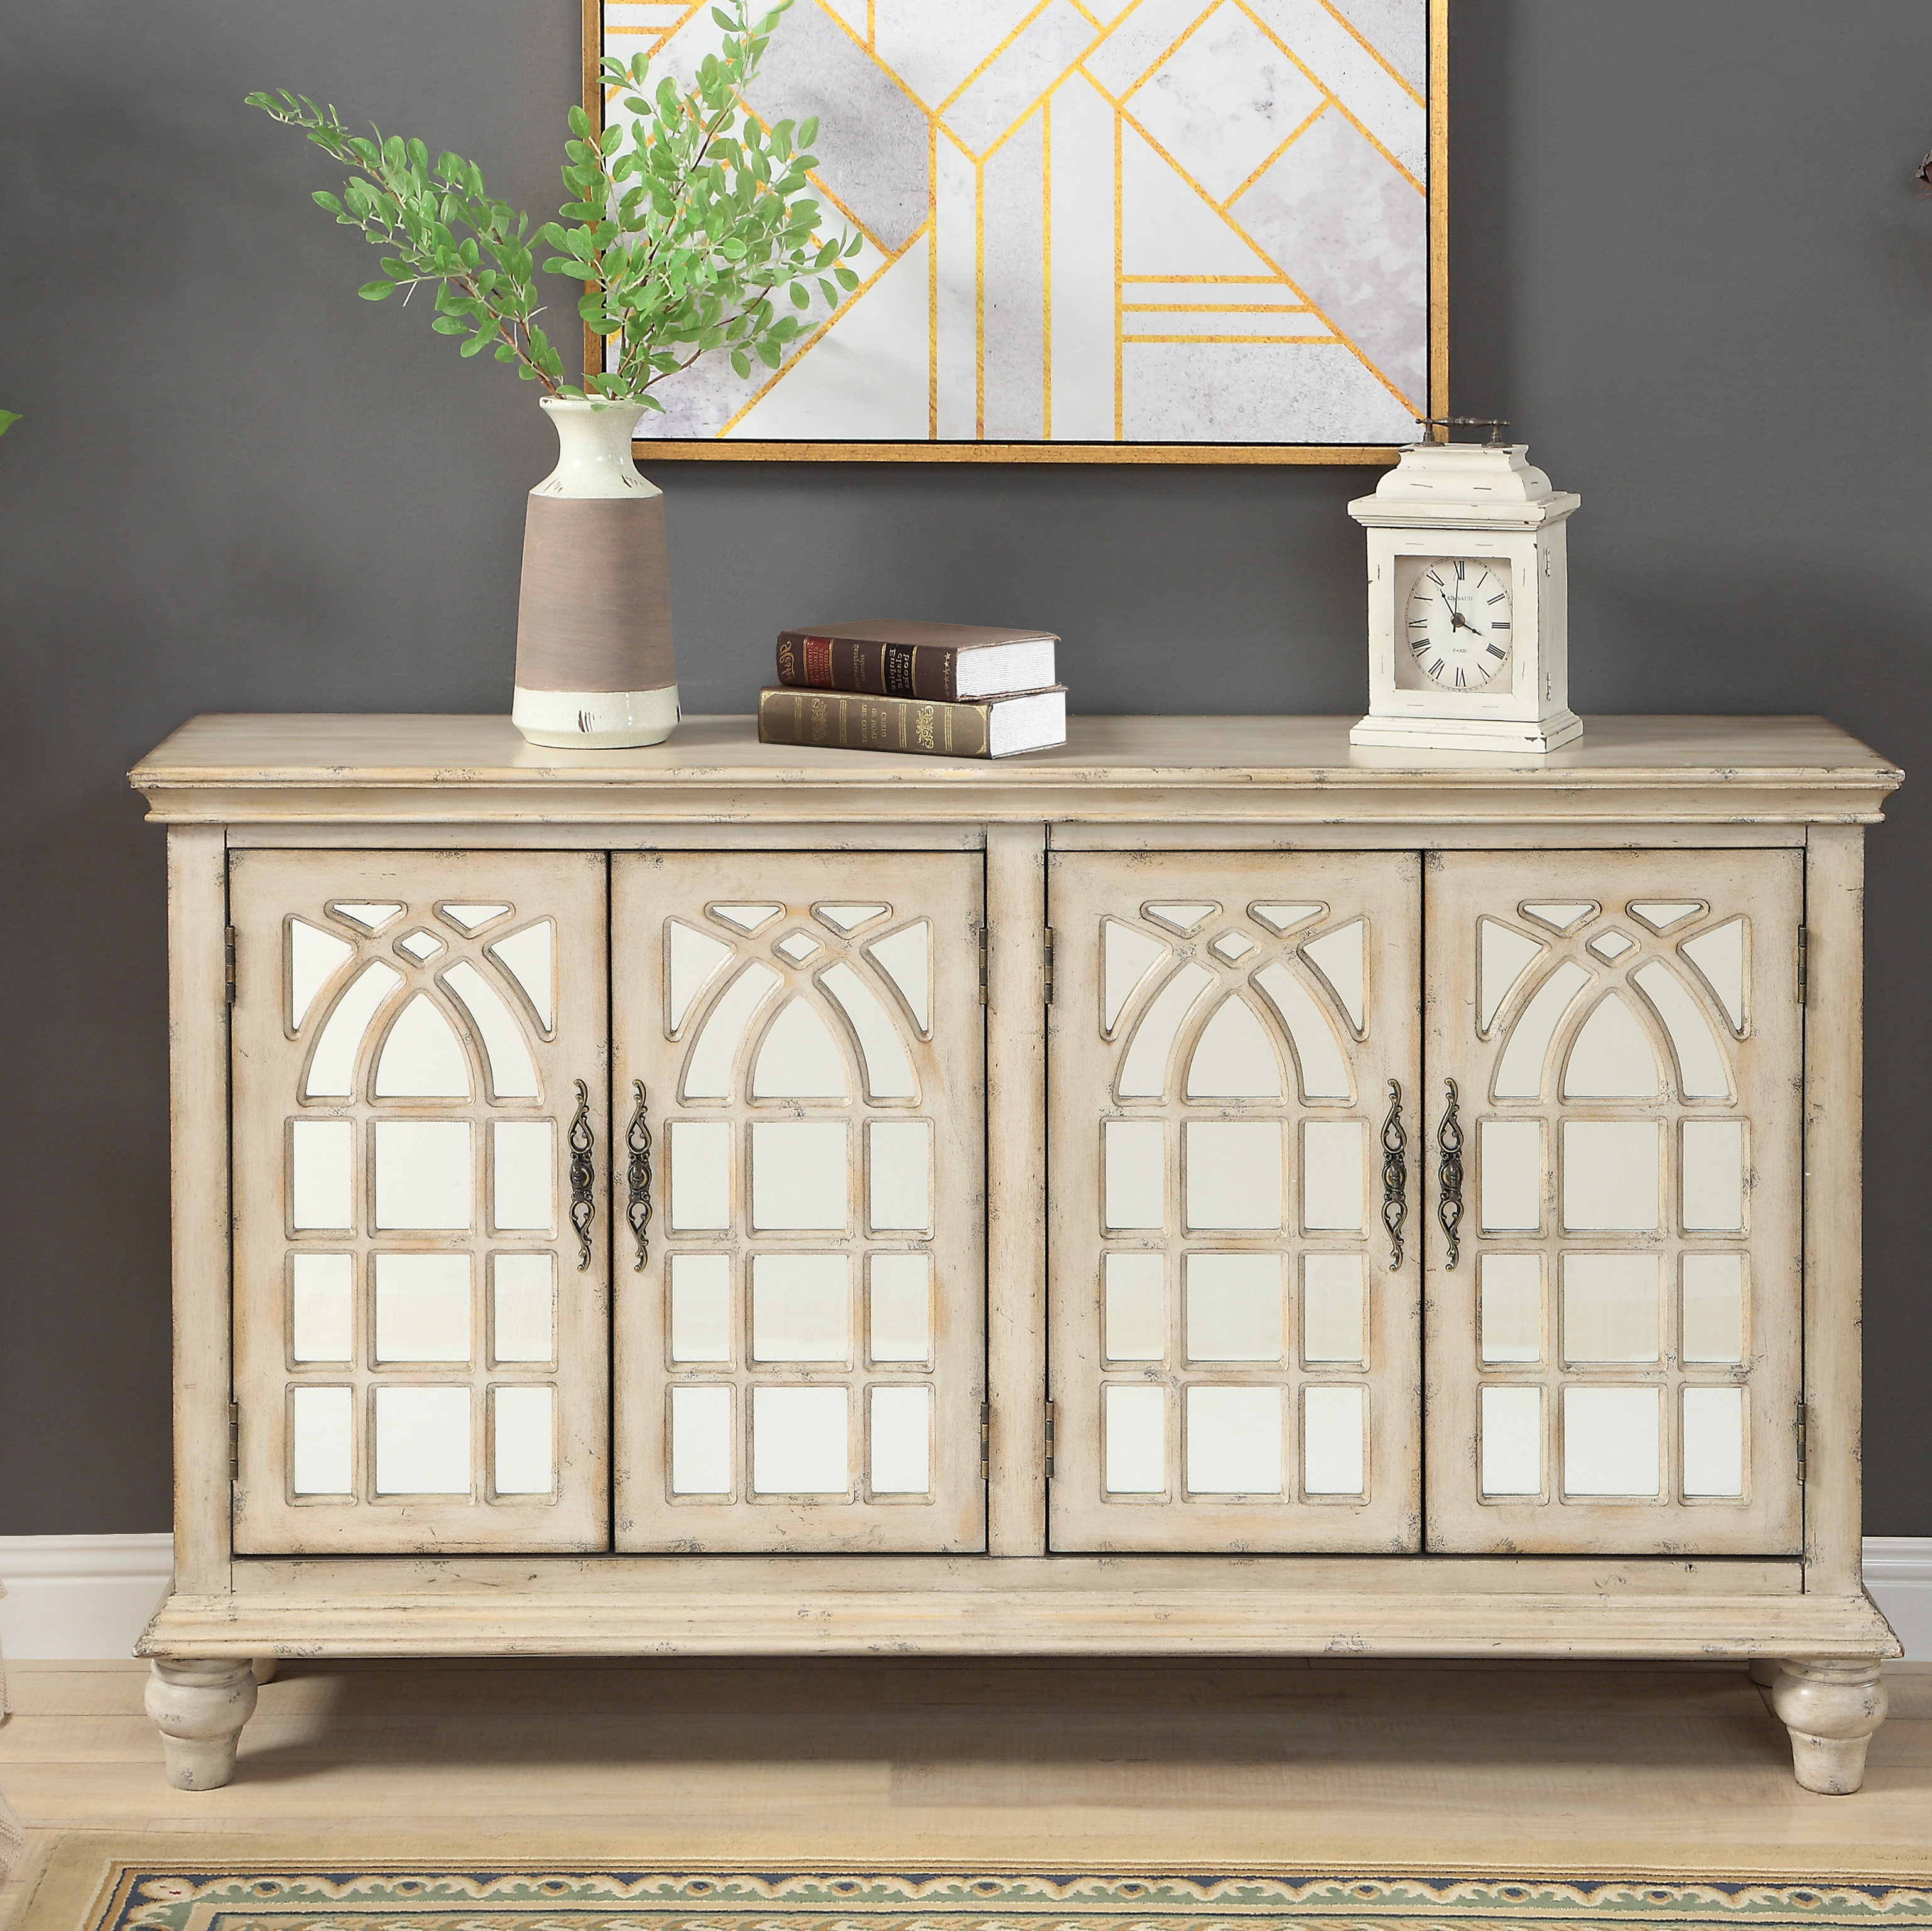 72 Inch Credenza | Wayfair Inside Latest Lainey Credenzas (#4 of 20)